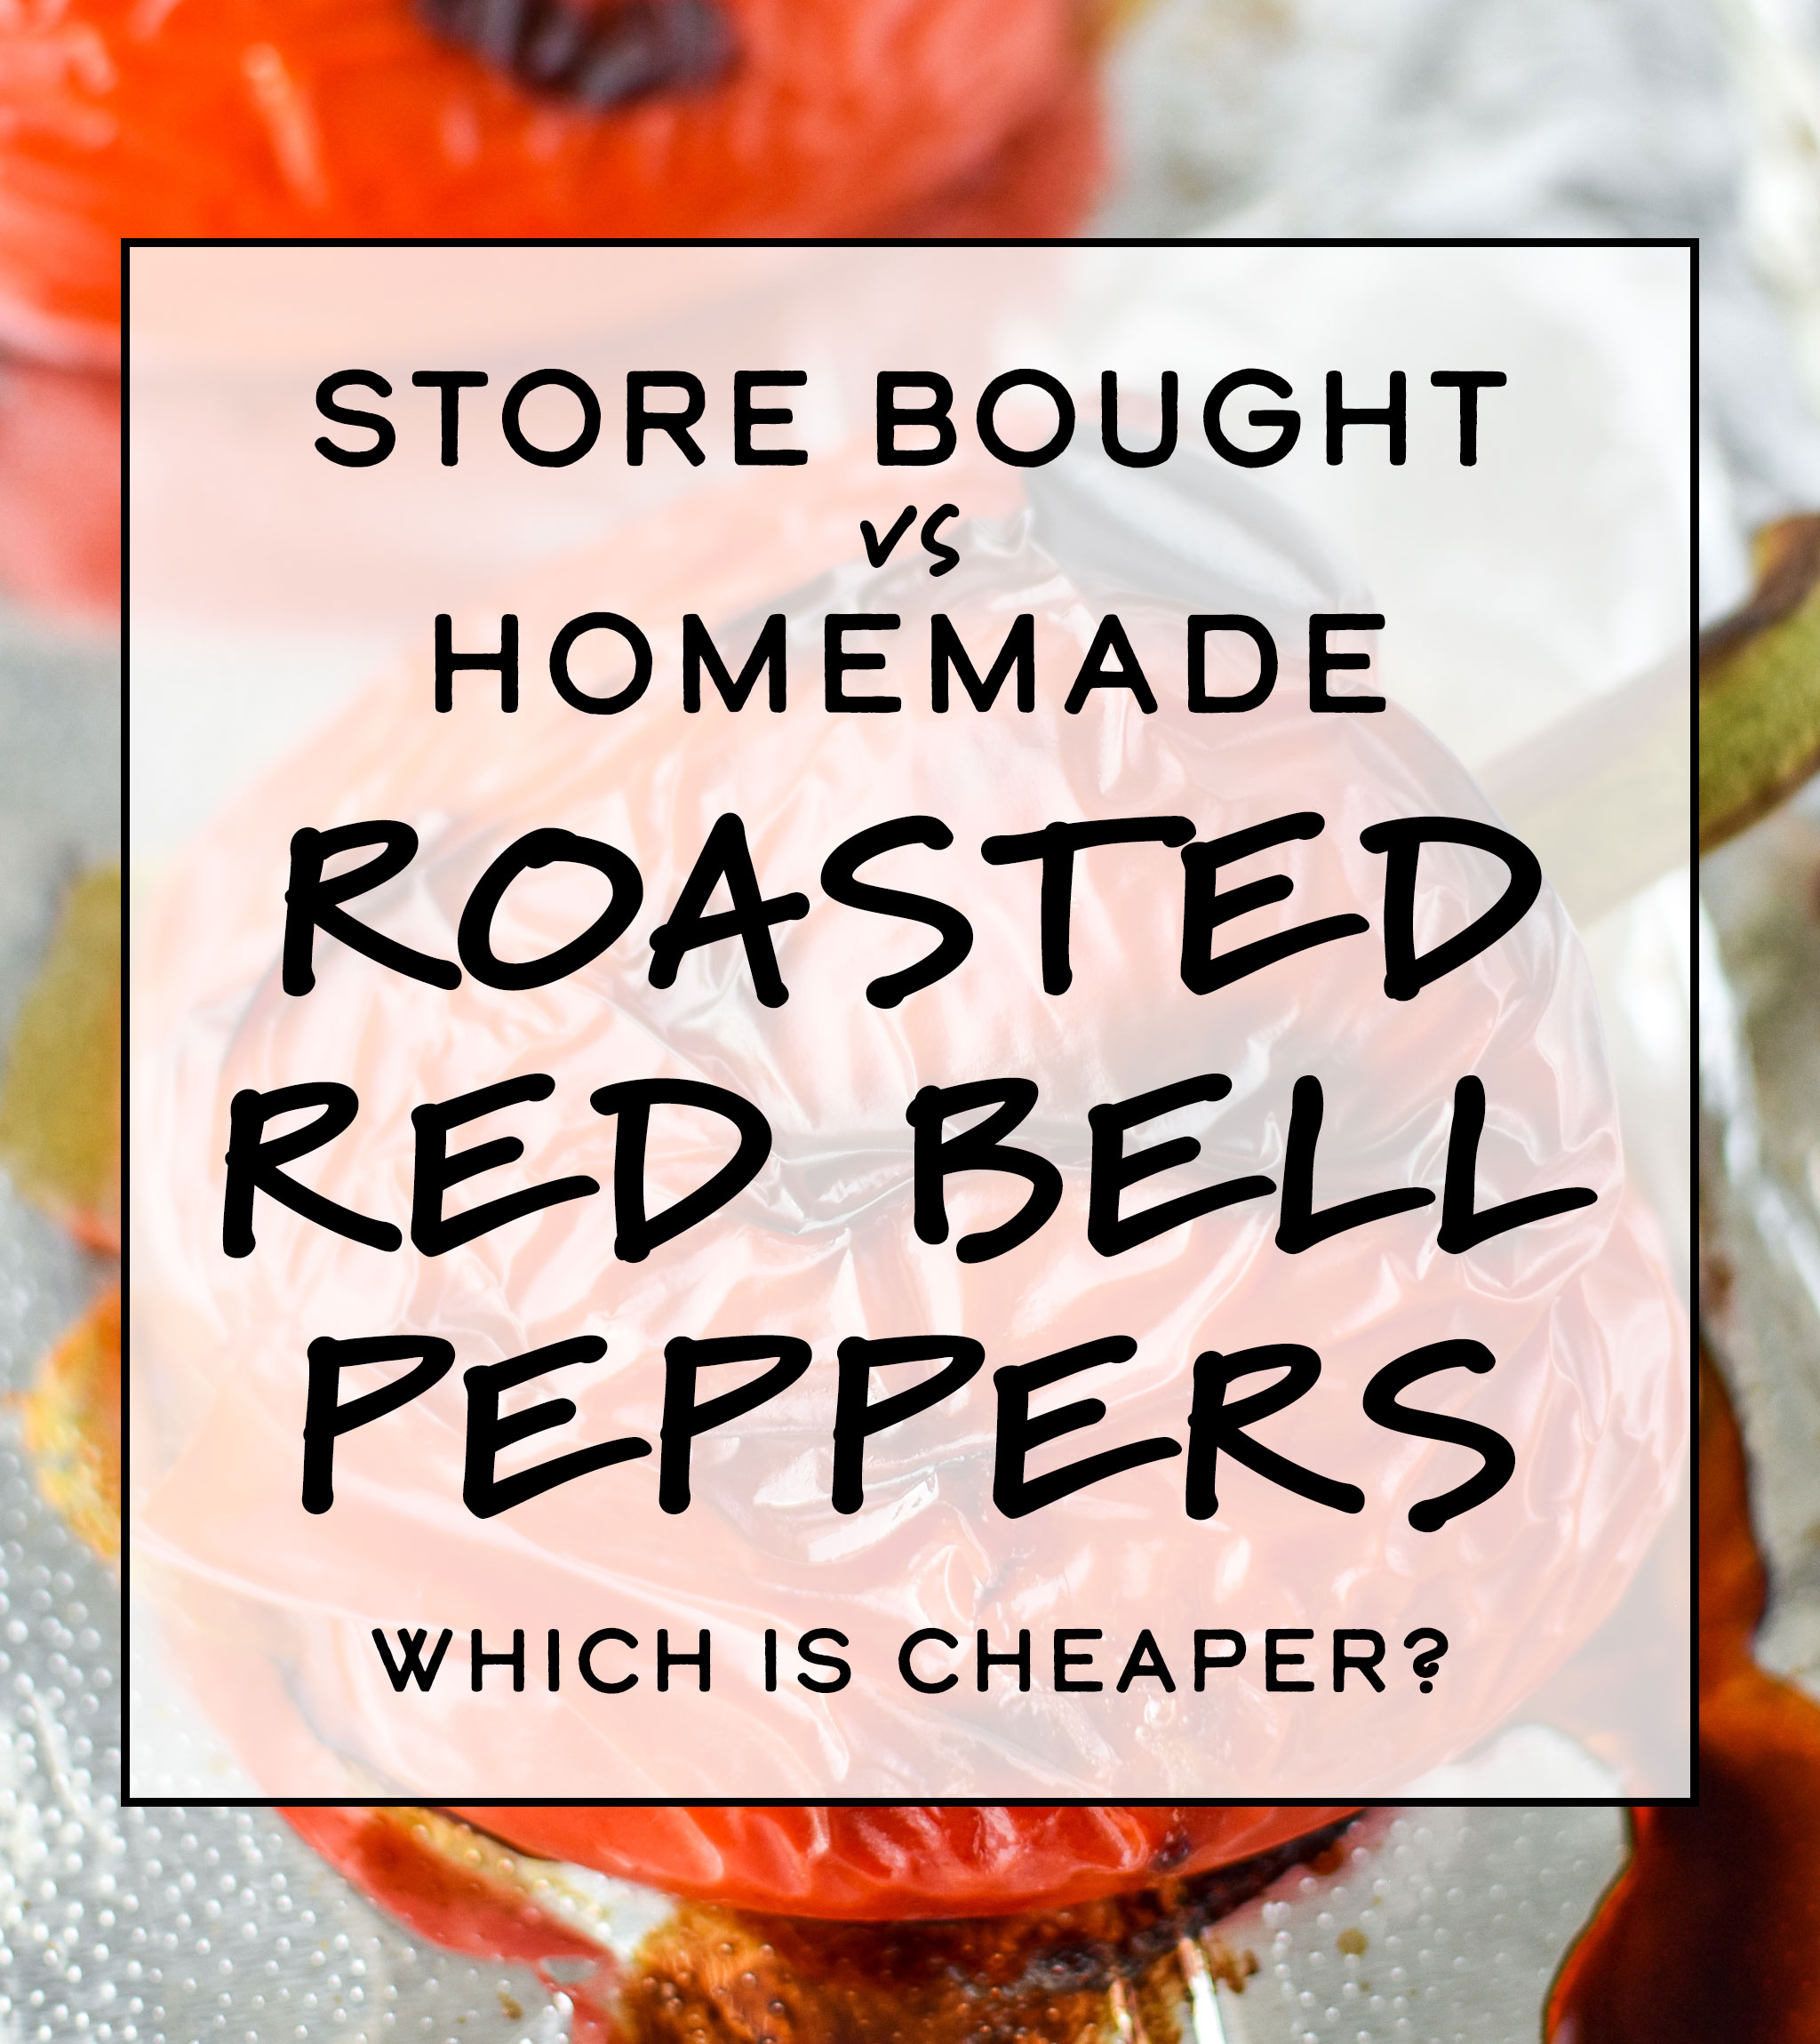 Store Bought Vs Homemade Roasted Red Bell Peppers Project Meal Plan